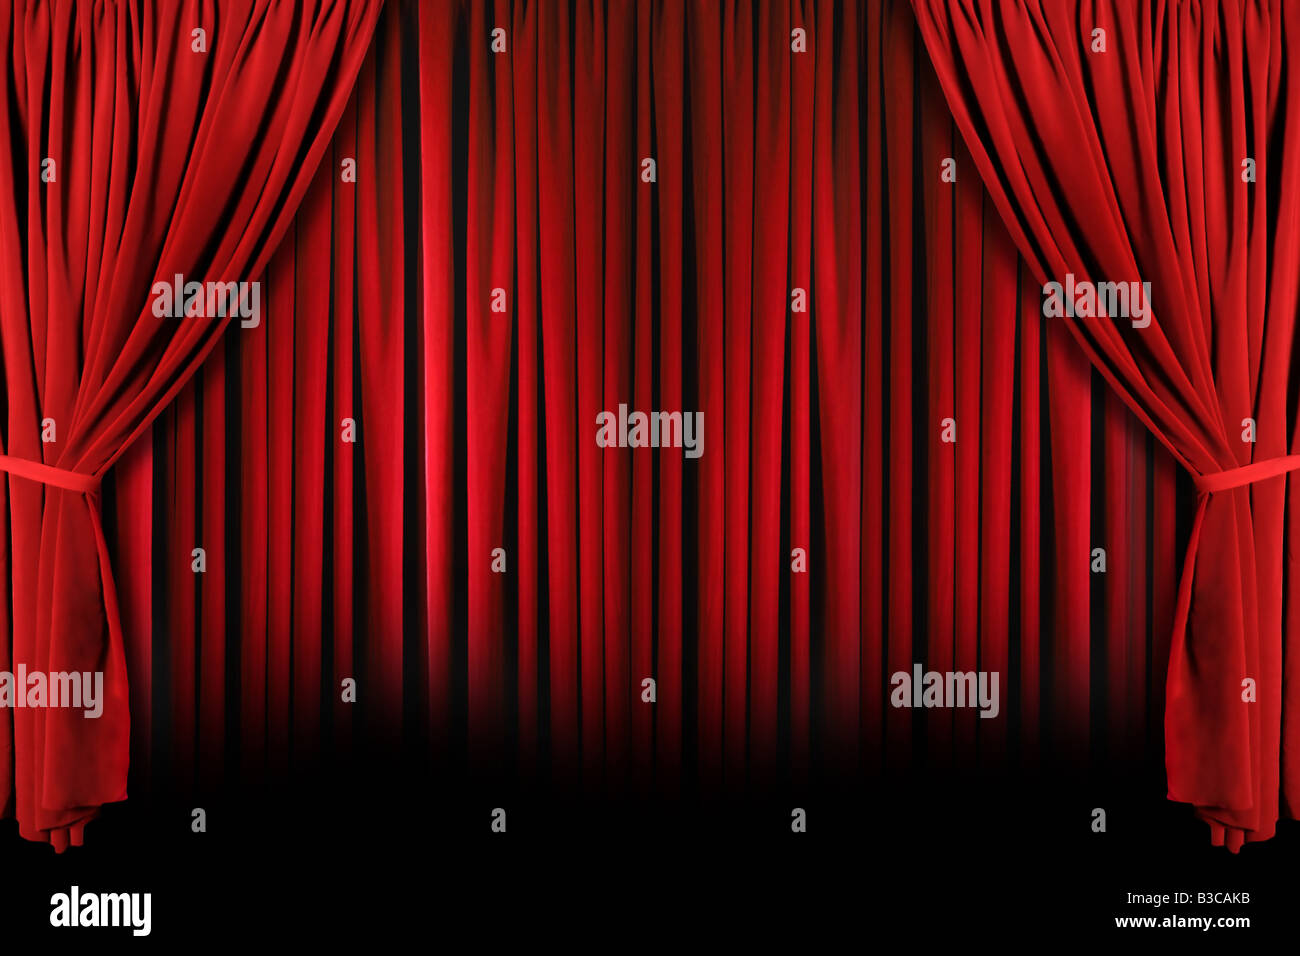 Red stage curtain with lights - Red Draped Theater Stage Curtains With Light And Shadows